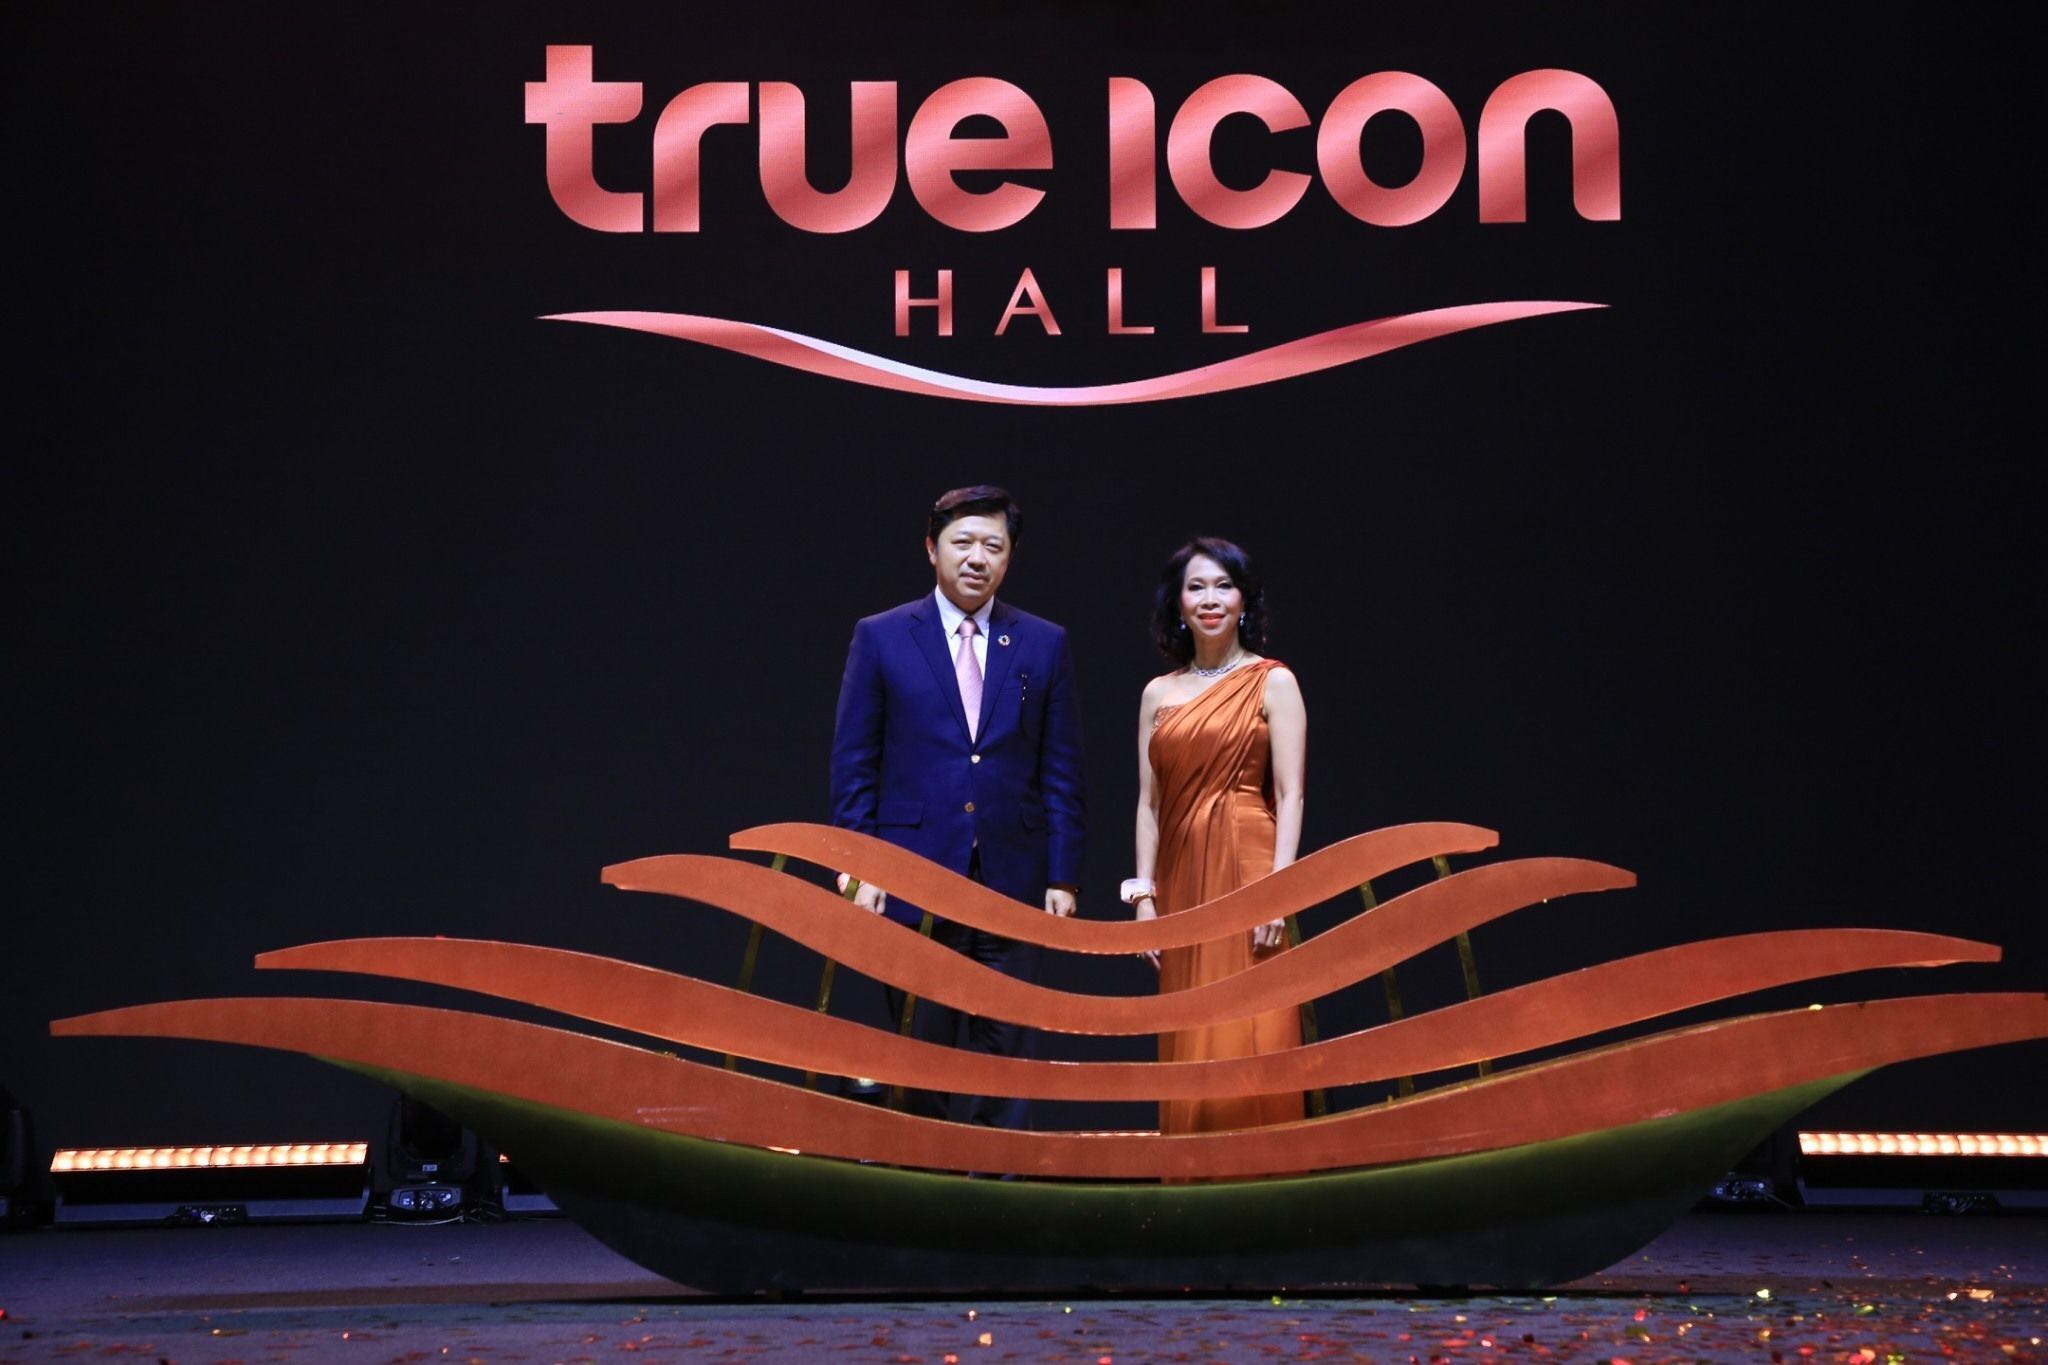 ICONSIAM, ICONSIAM first year anniversary, TRUE ICON HALL, Iconsiam true hall, iconsiam party, first year anniversary, the celebration of glory, True icon hall bangkok, iconsiam bangkok, seven wonders of iconsiam